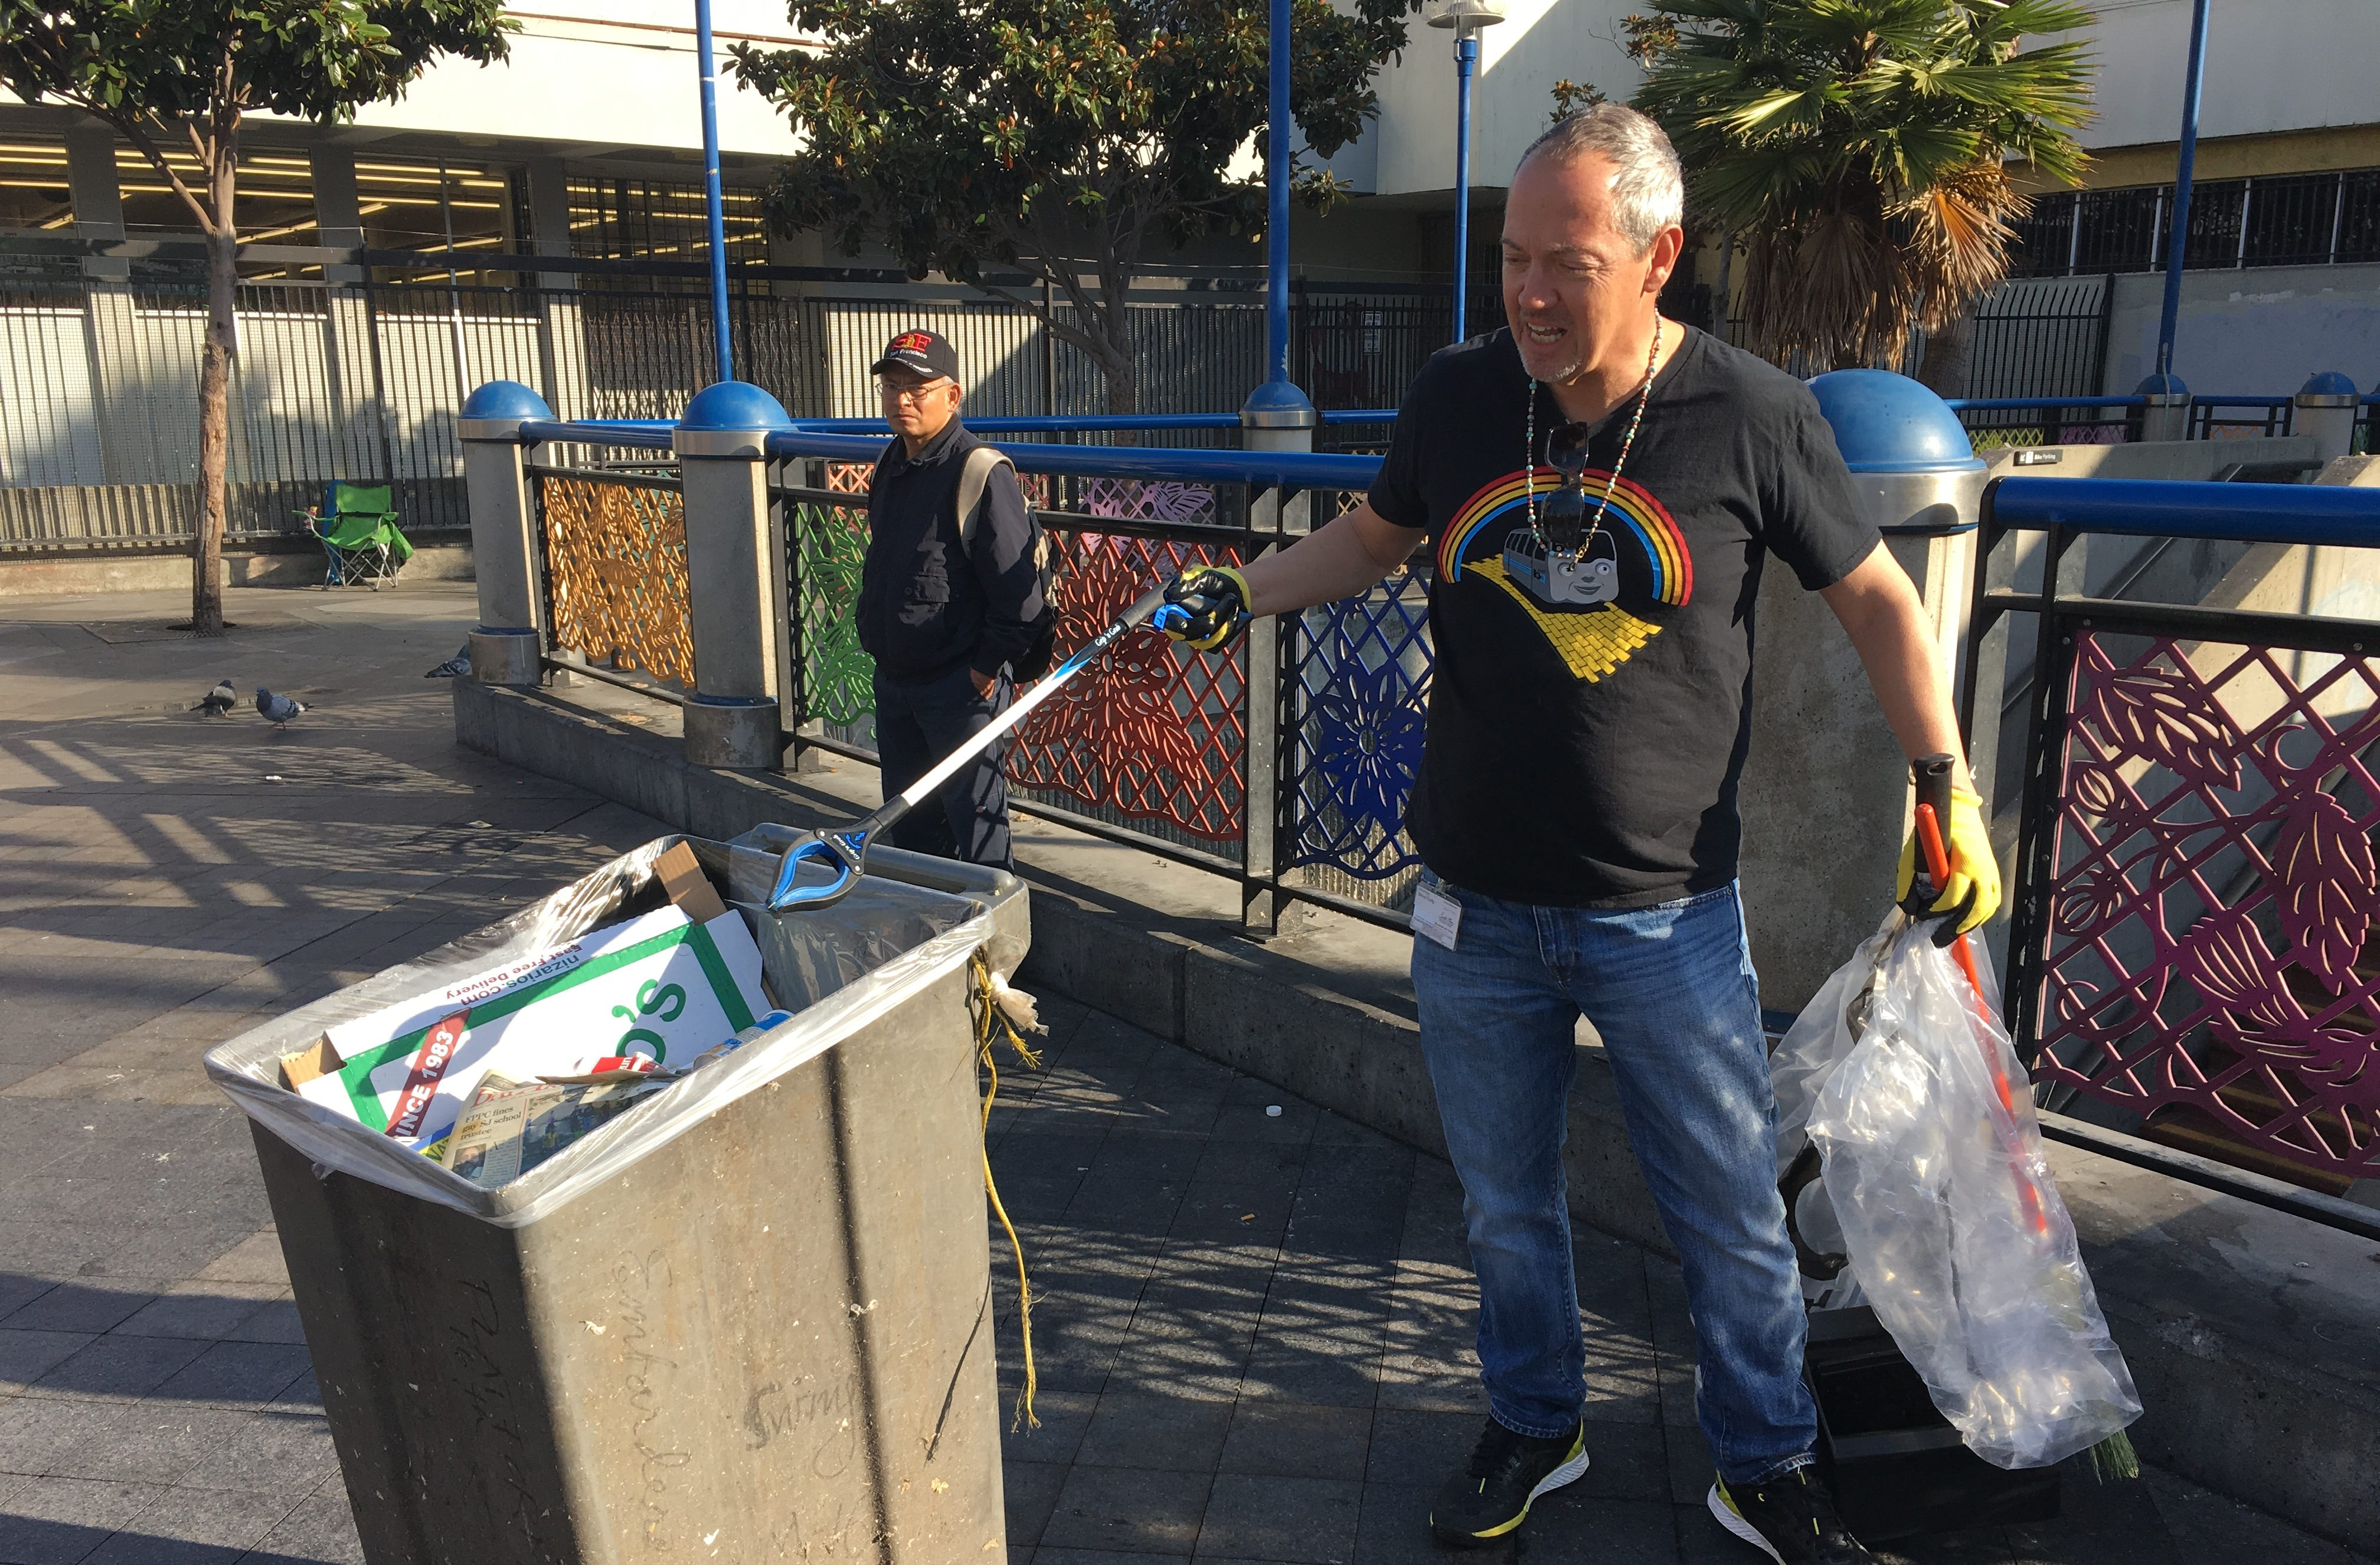 Bevan Dufty cleaning up the 16th Street Mission BART station plaza, Nov. 2017 (Photo/Courtesy Susie Neilson-Mission Local)